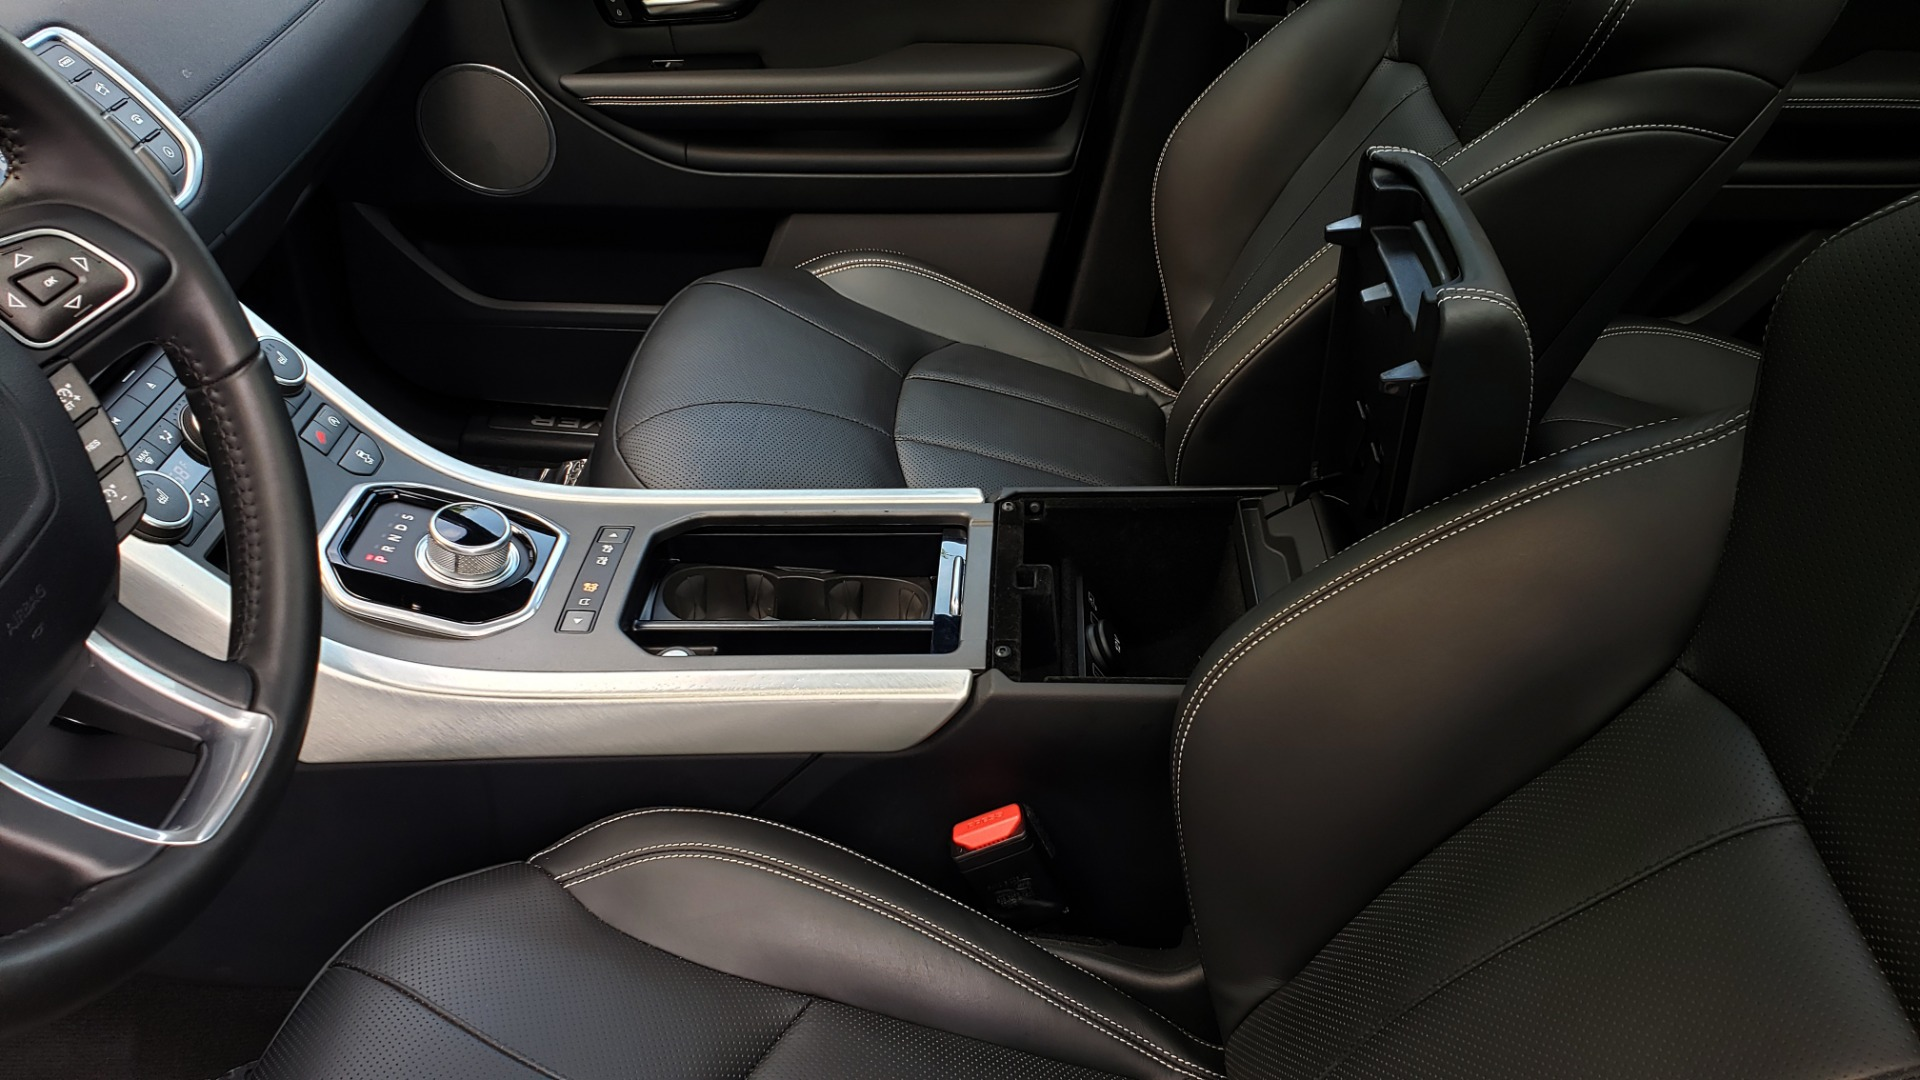 Used 2016 Land Rover RANGE ROVER EVOQUE HSE / AWD / NAV / MERIDIAN / PANO-ROOF / REARVIEW for sale Sold at Formula Imports in Charlotte NC 28227 53